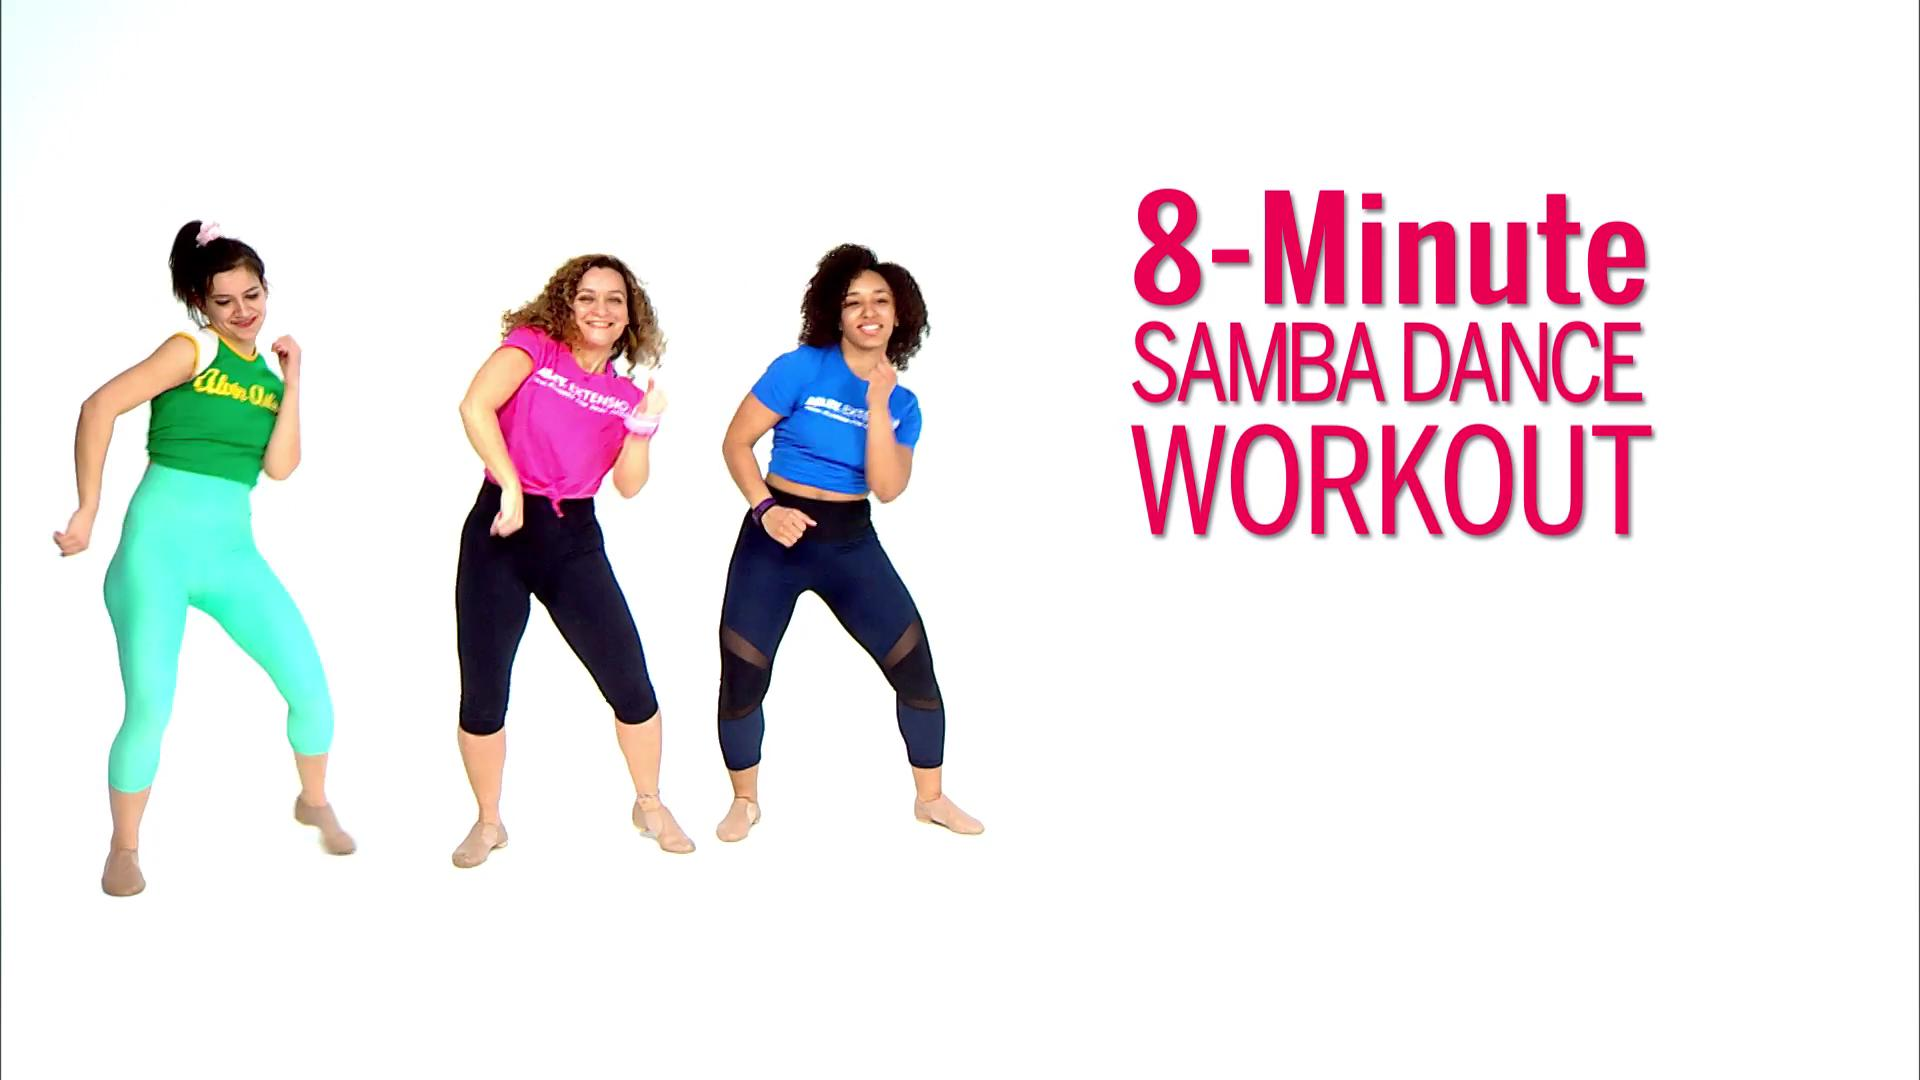 8-Minute Samba Dance Workout